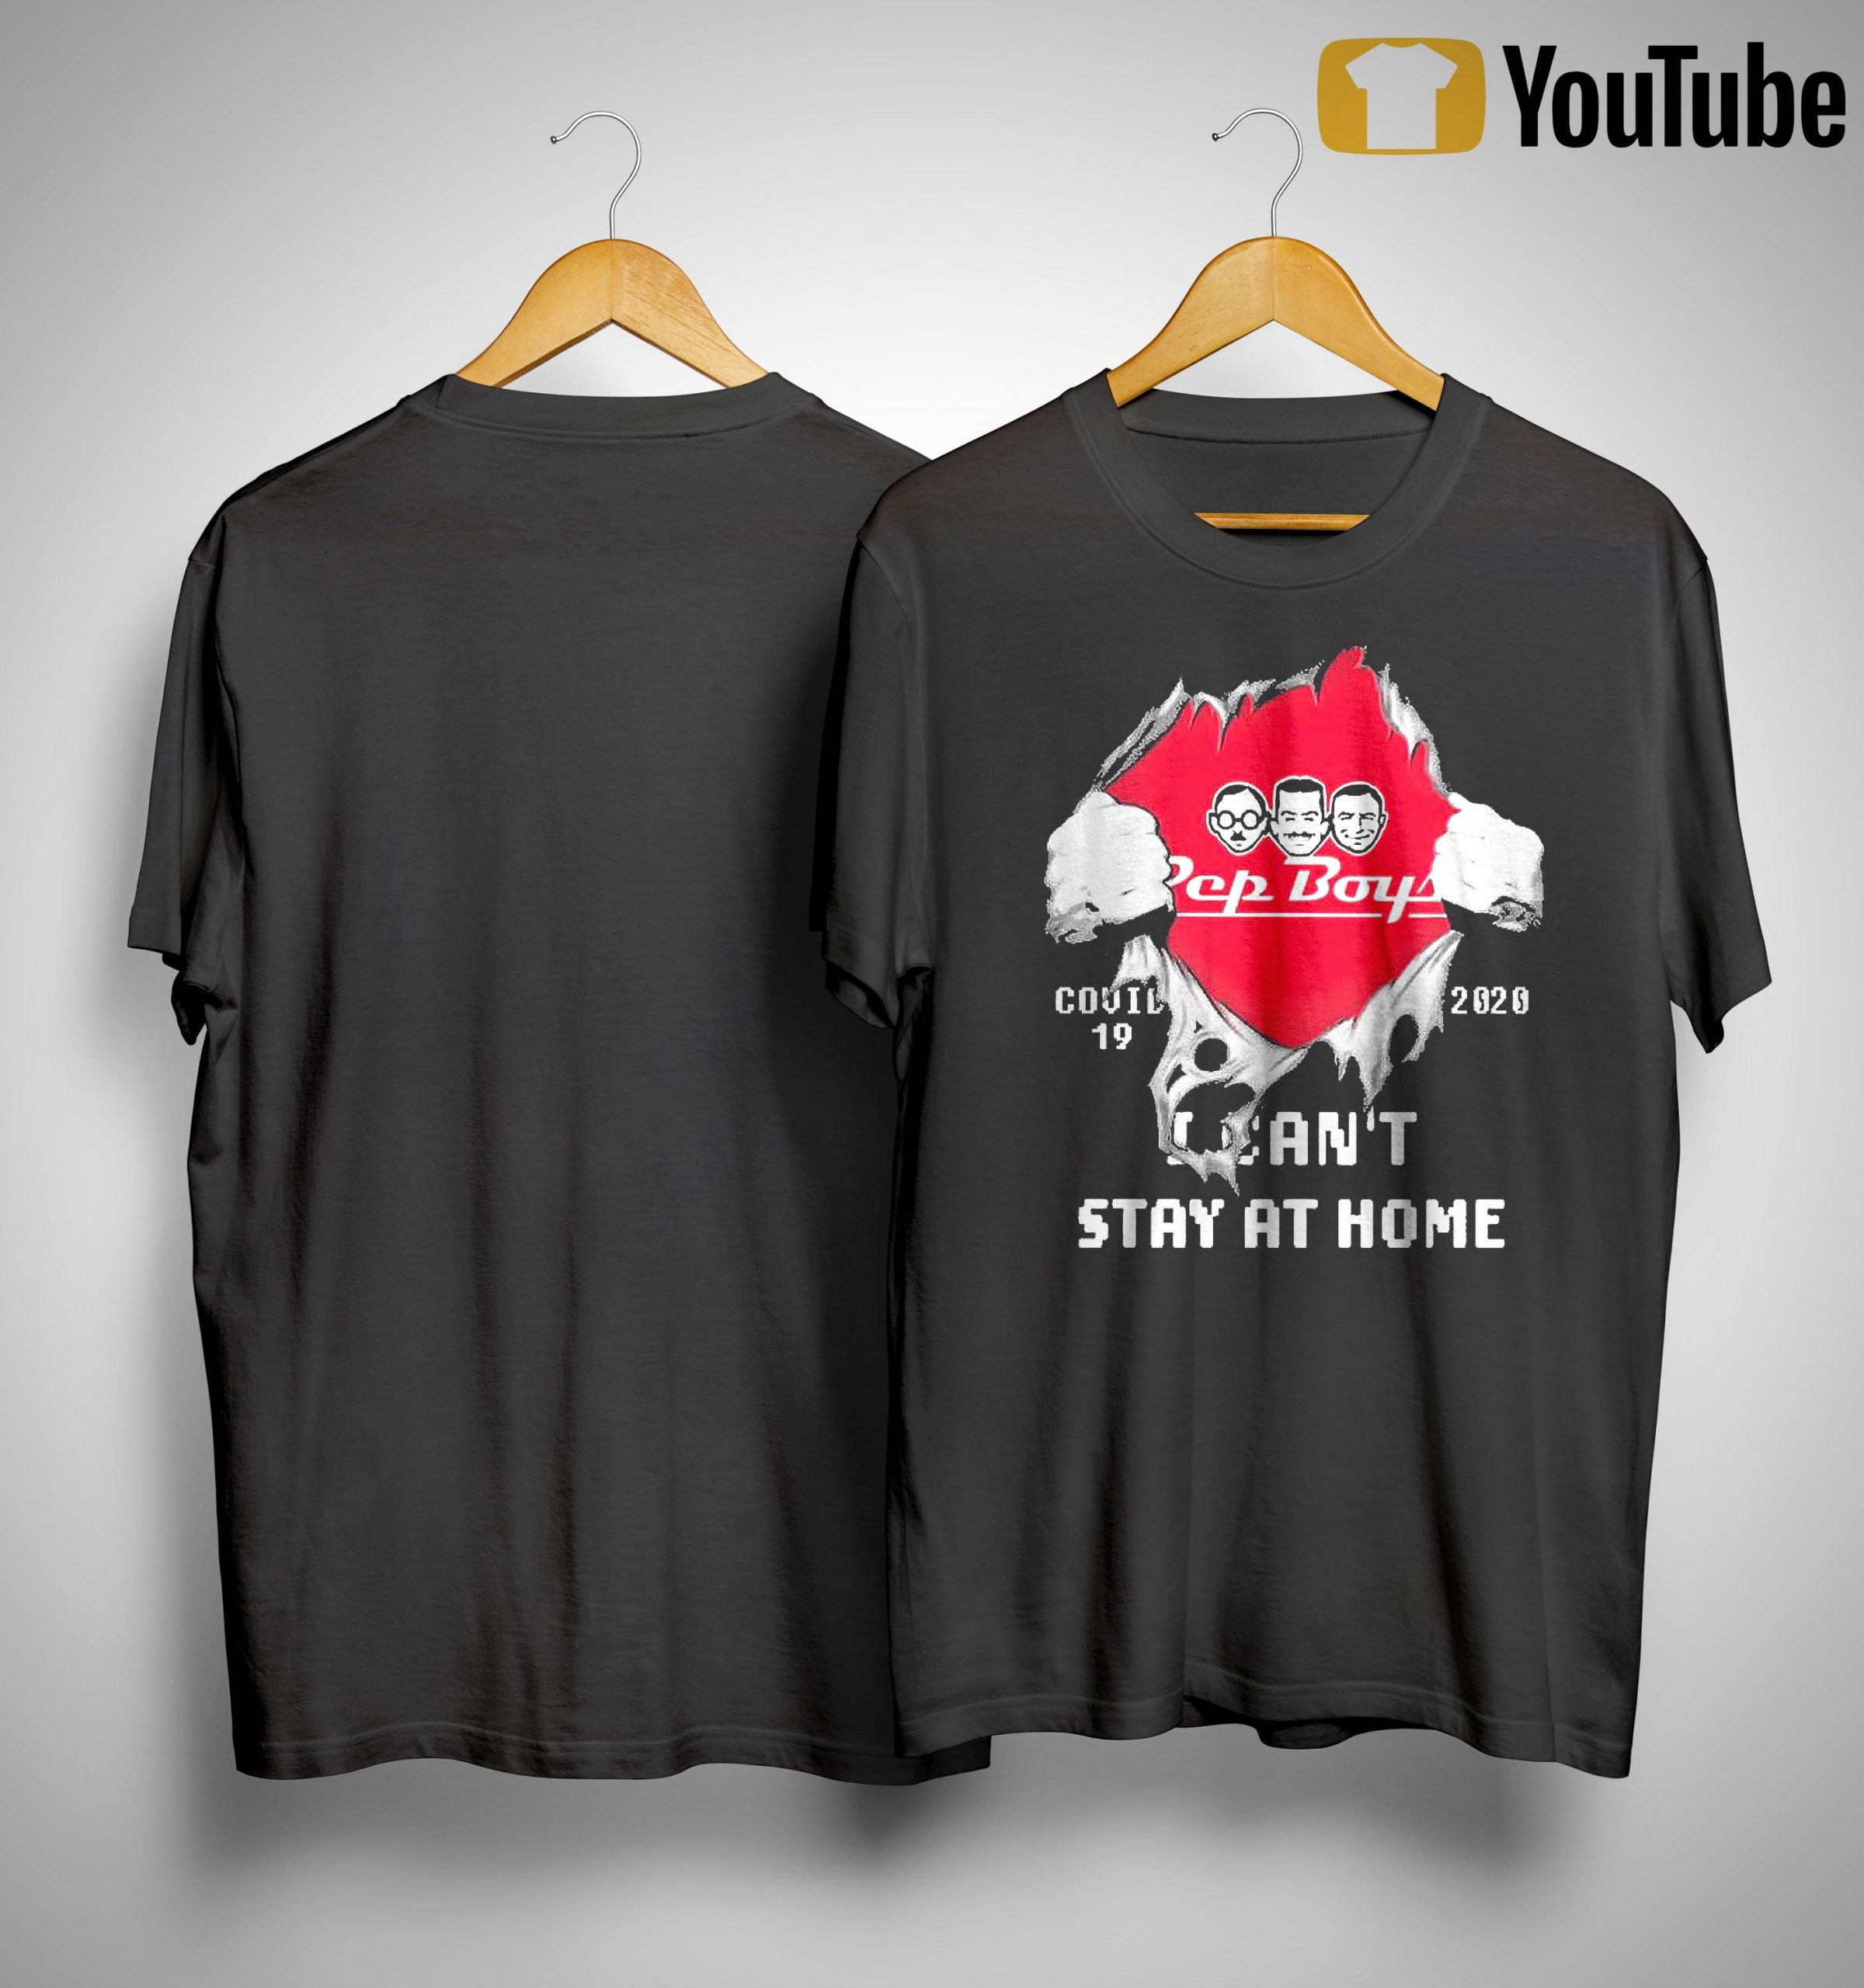 Inside Me Pep Boys Covid 19 2020 I Can't Stay At Home Shirt